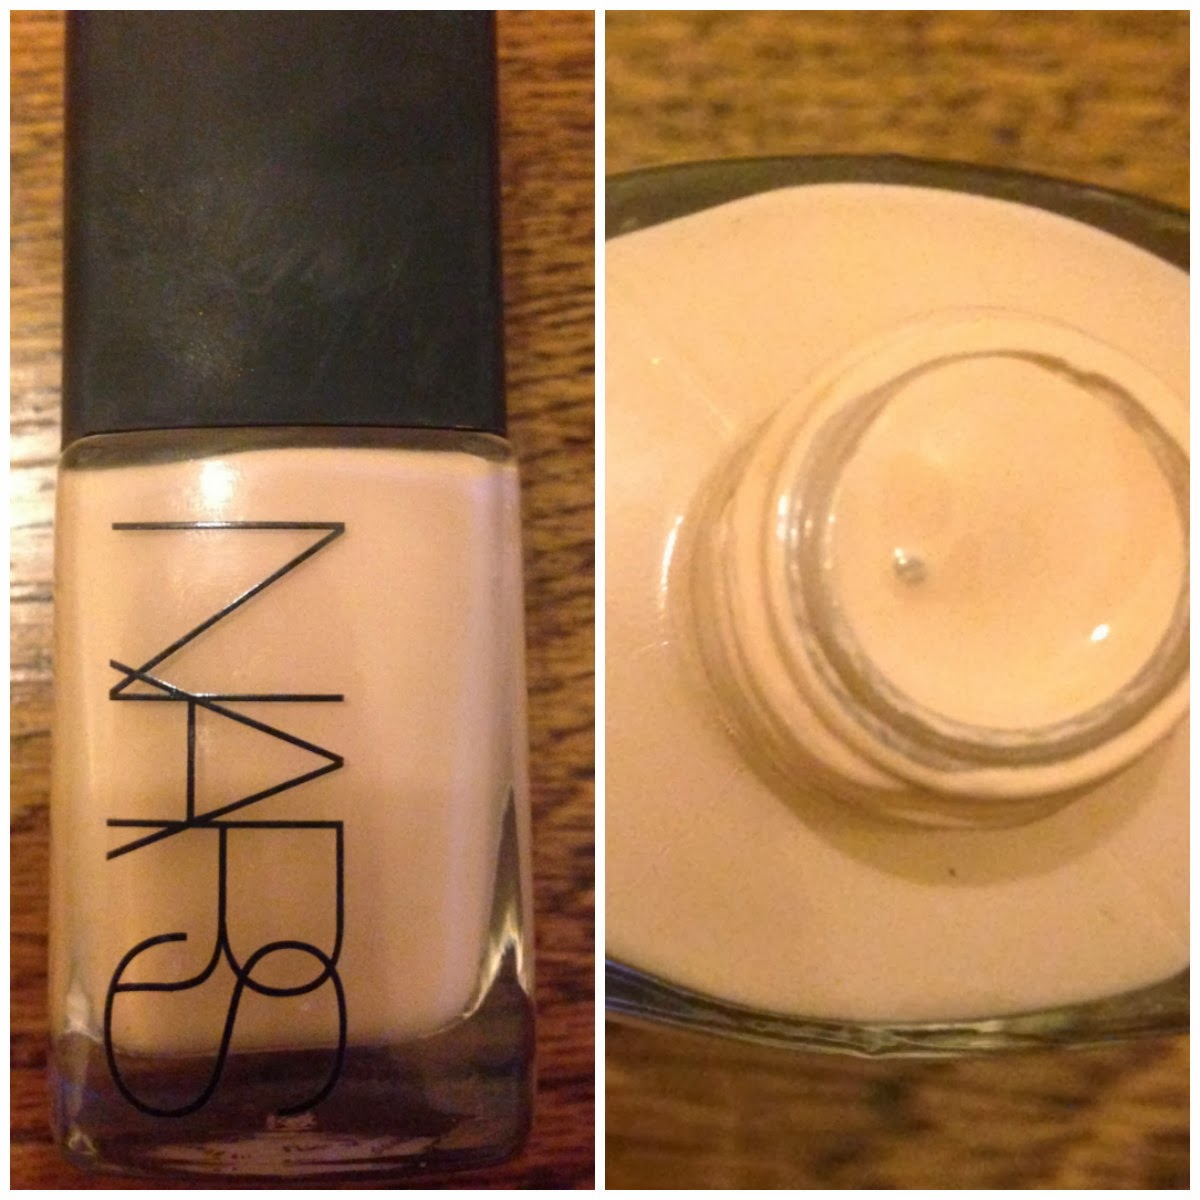 nars sheer glow foundation in mont blanc